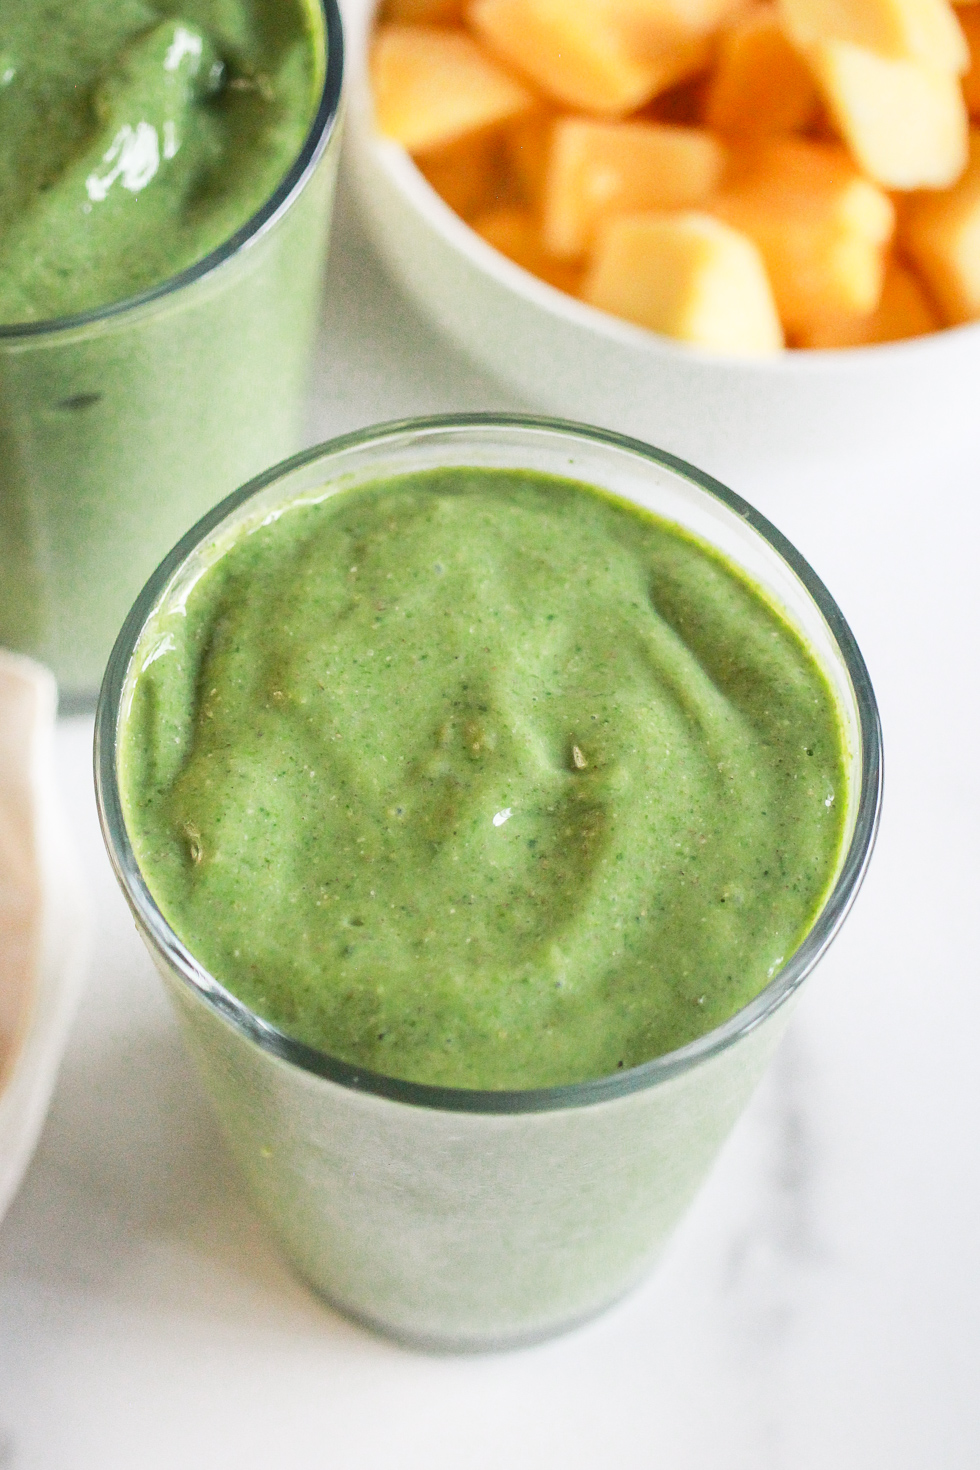 Matcha smoothie in front of a bowl of frozen mango chunks.